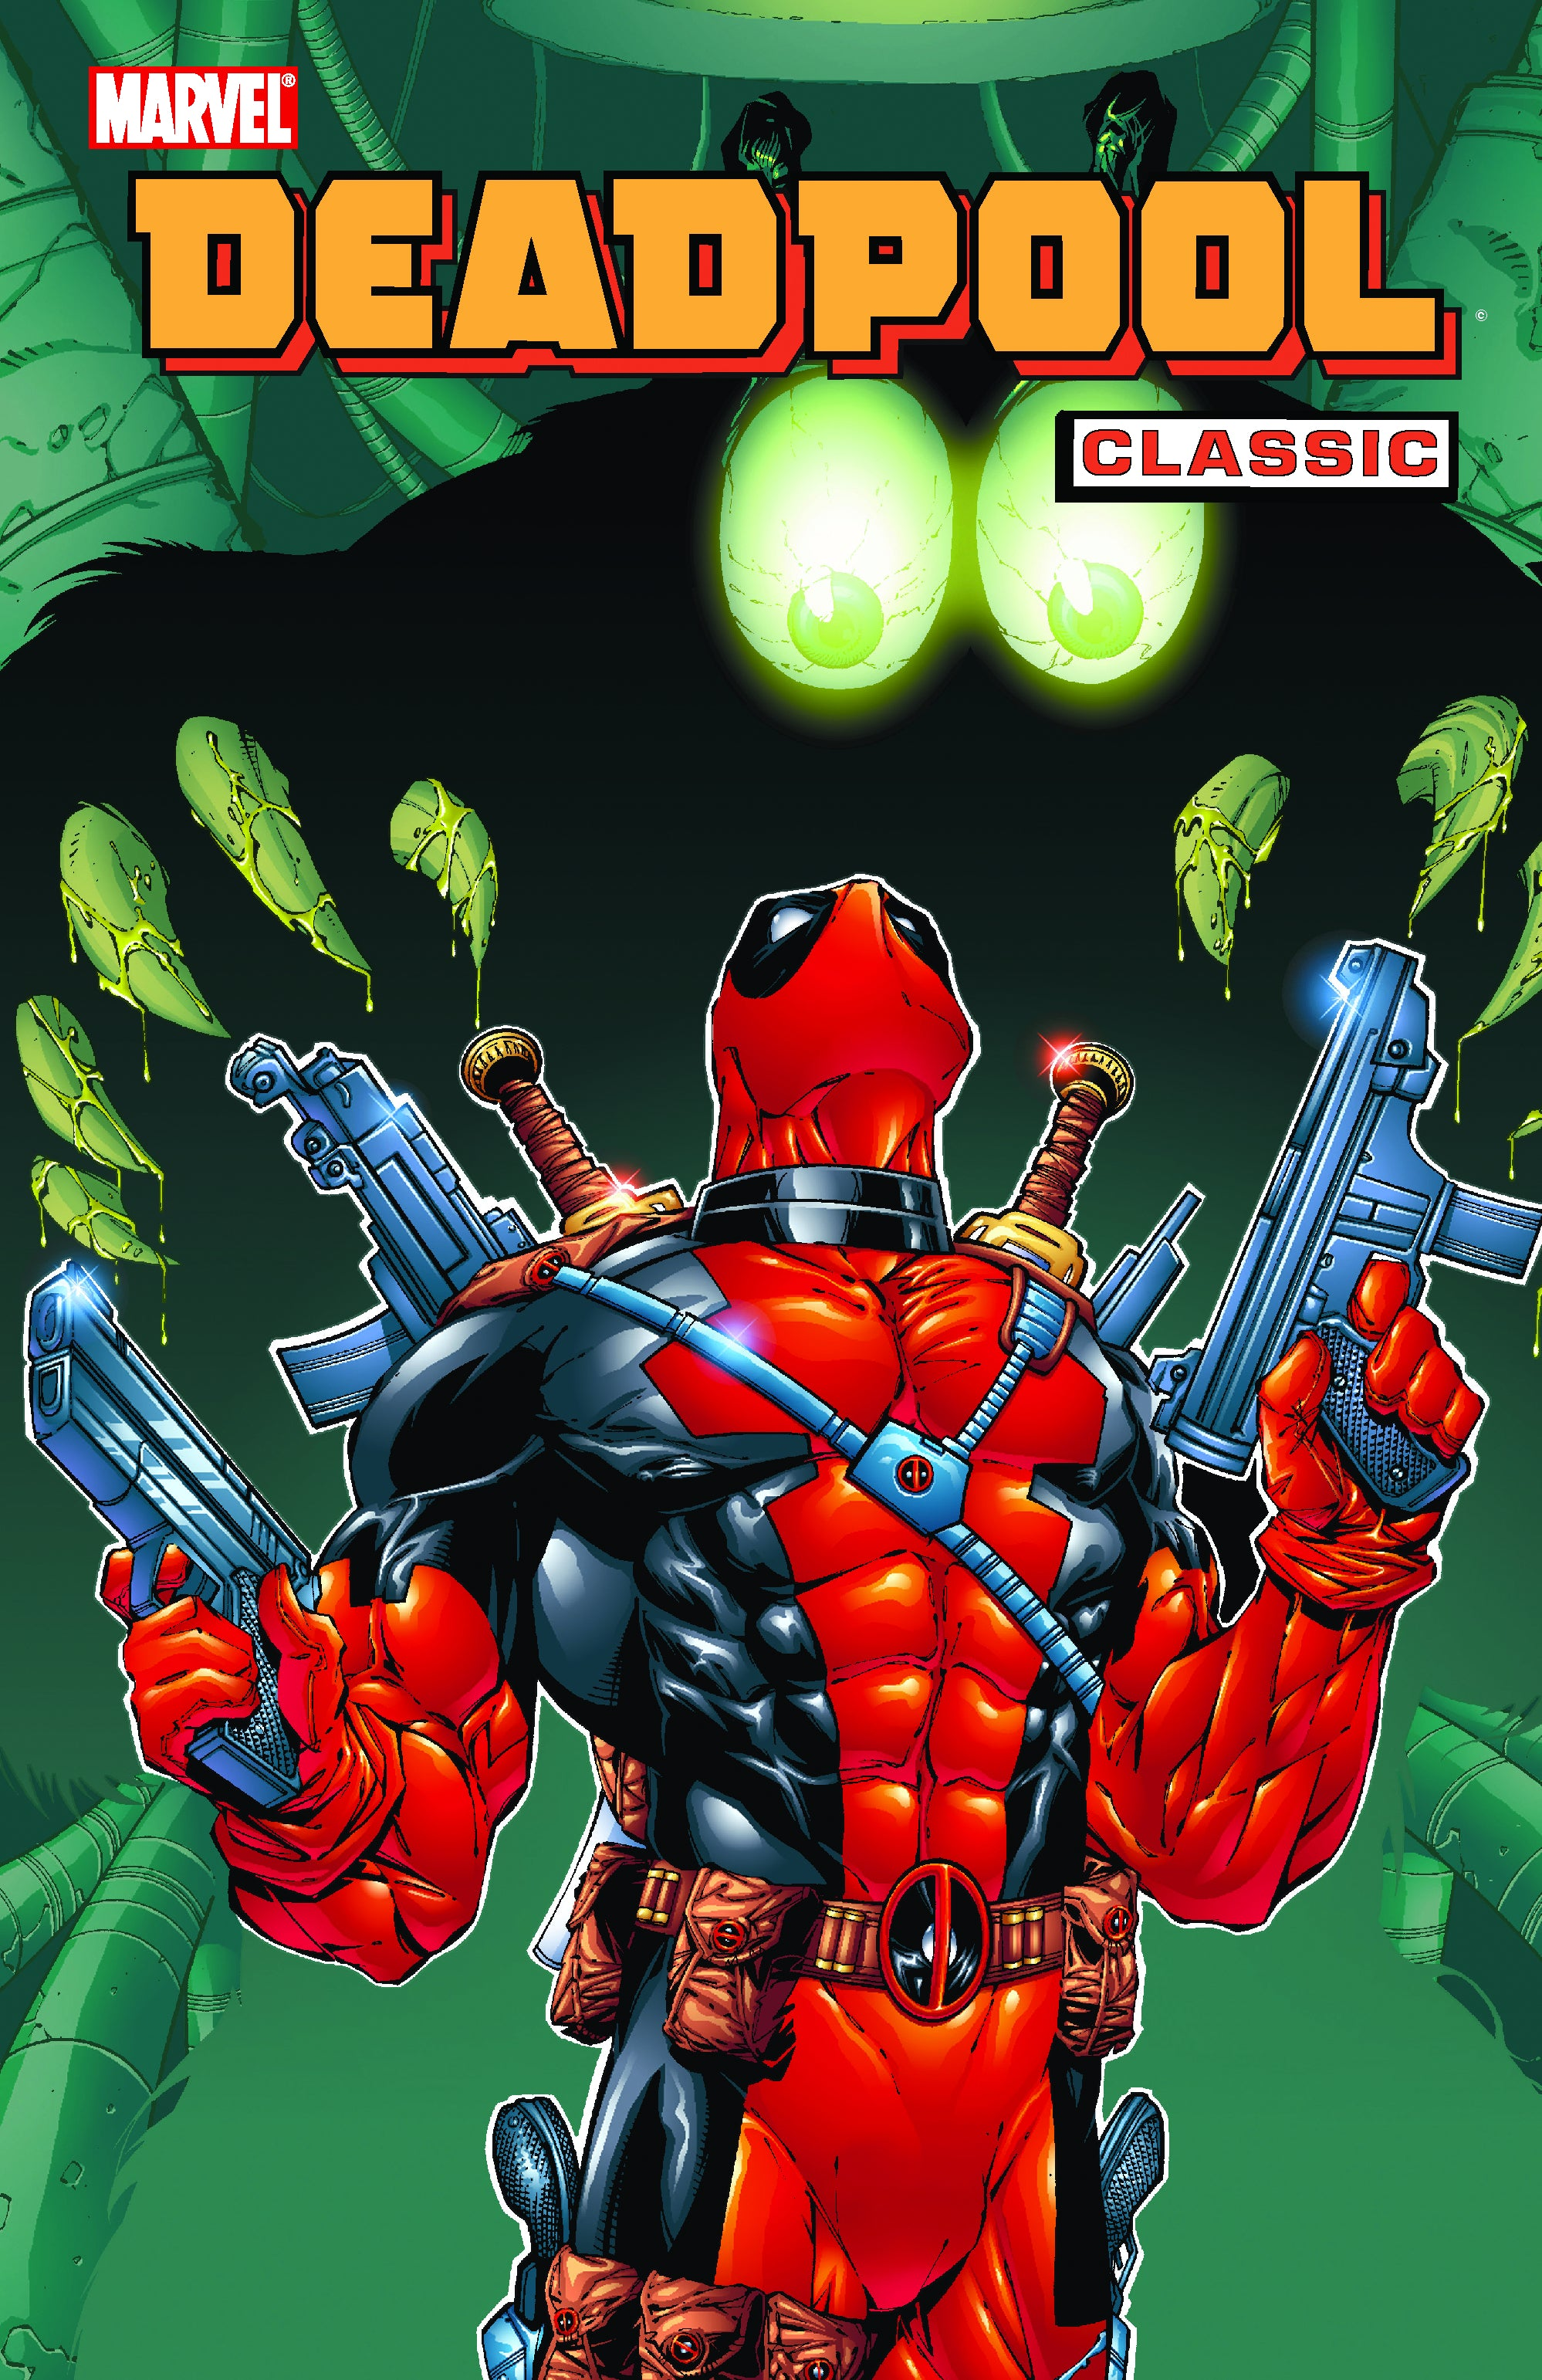 DEADPOOL CLASSIC TP VOL 03 | Game Master's Emporium (The New GME)